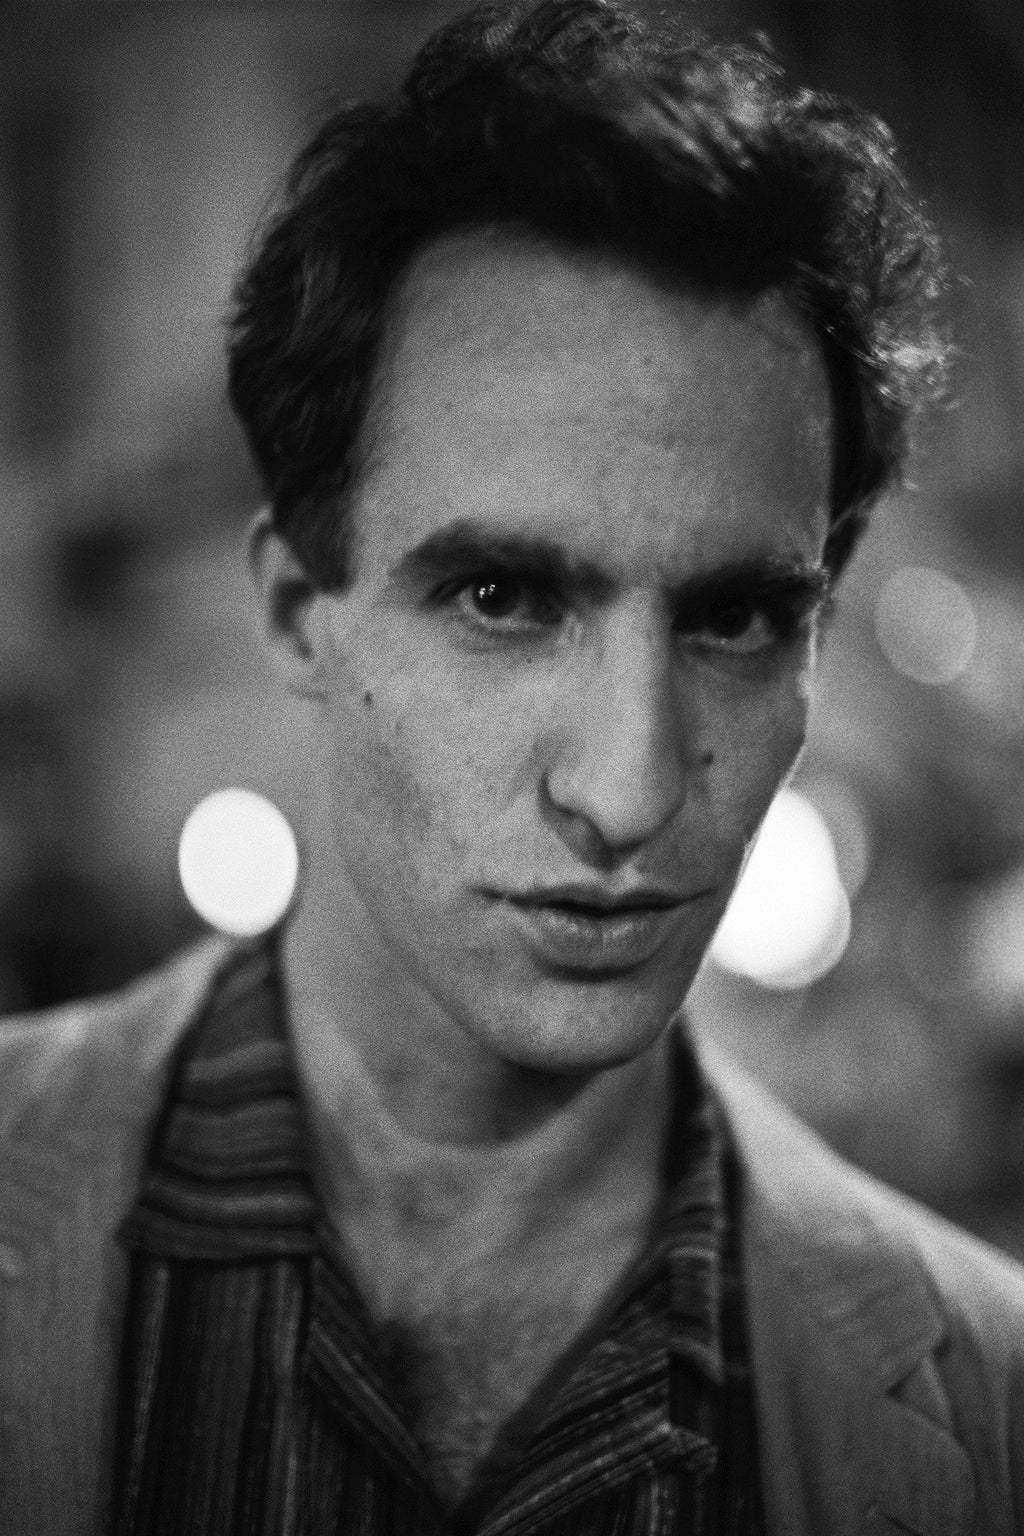 Portrait by Ole Christiansen - John Lurie Fine-art photography Ole Christiansen